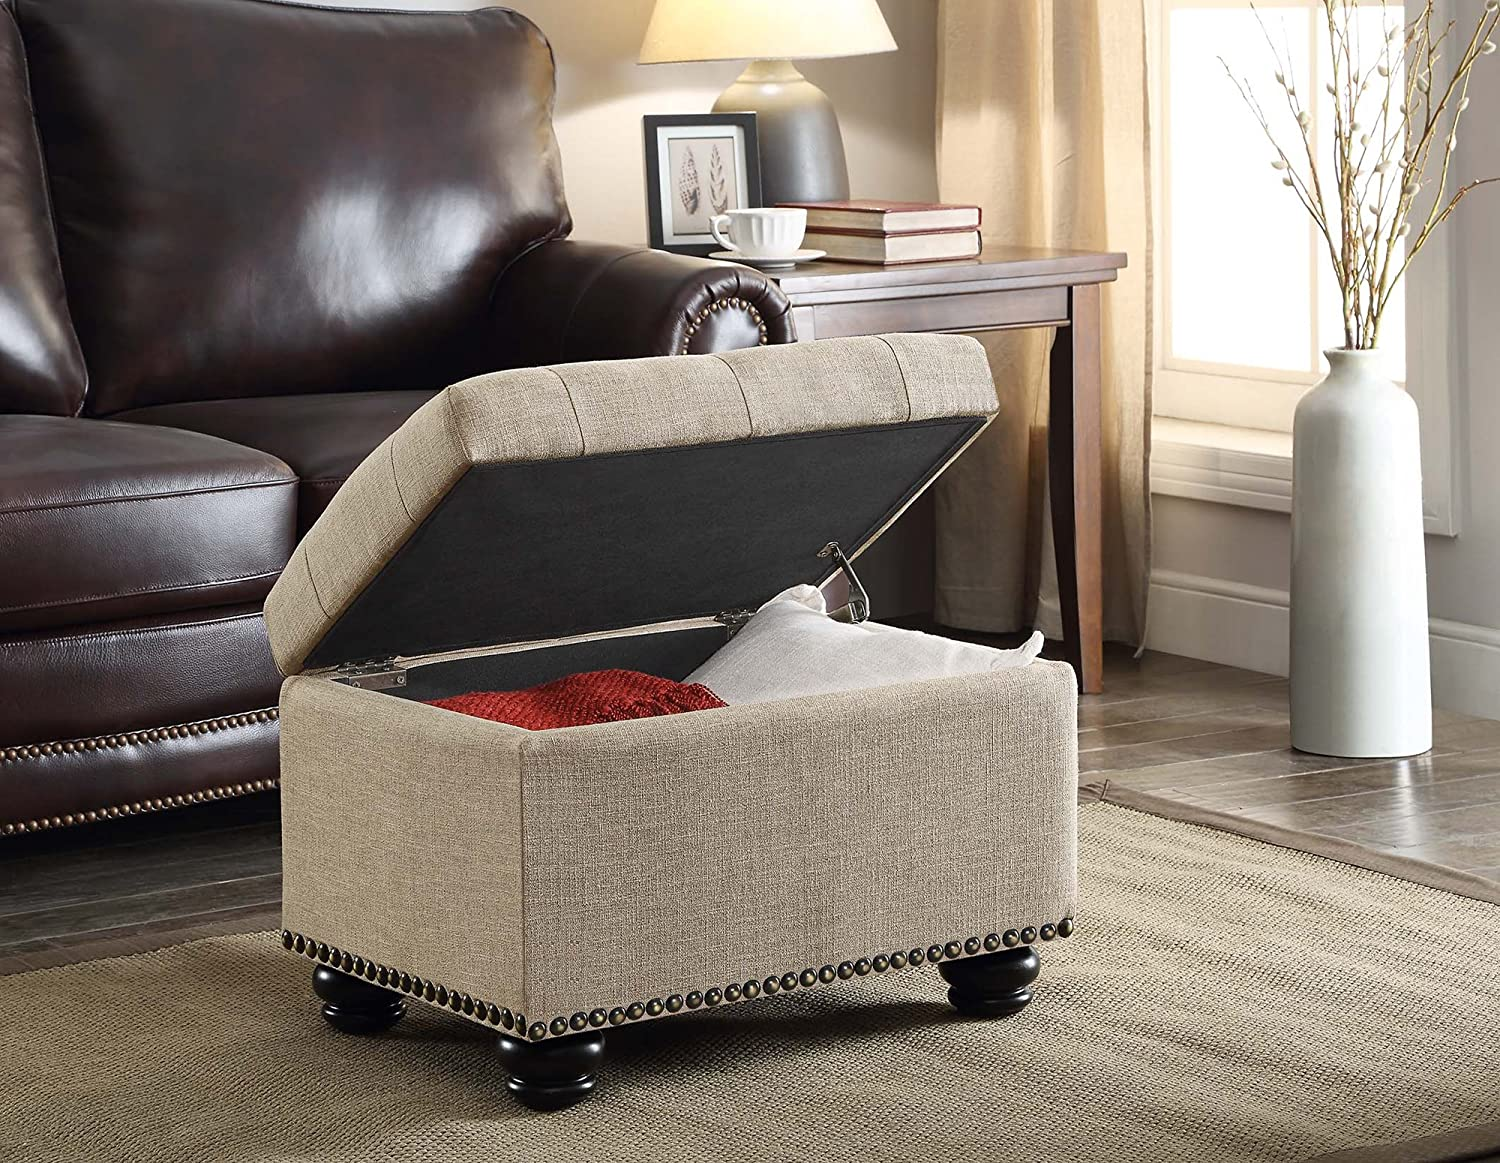 Storage Ottomans You Will Love To Buy Ease Bedding With